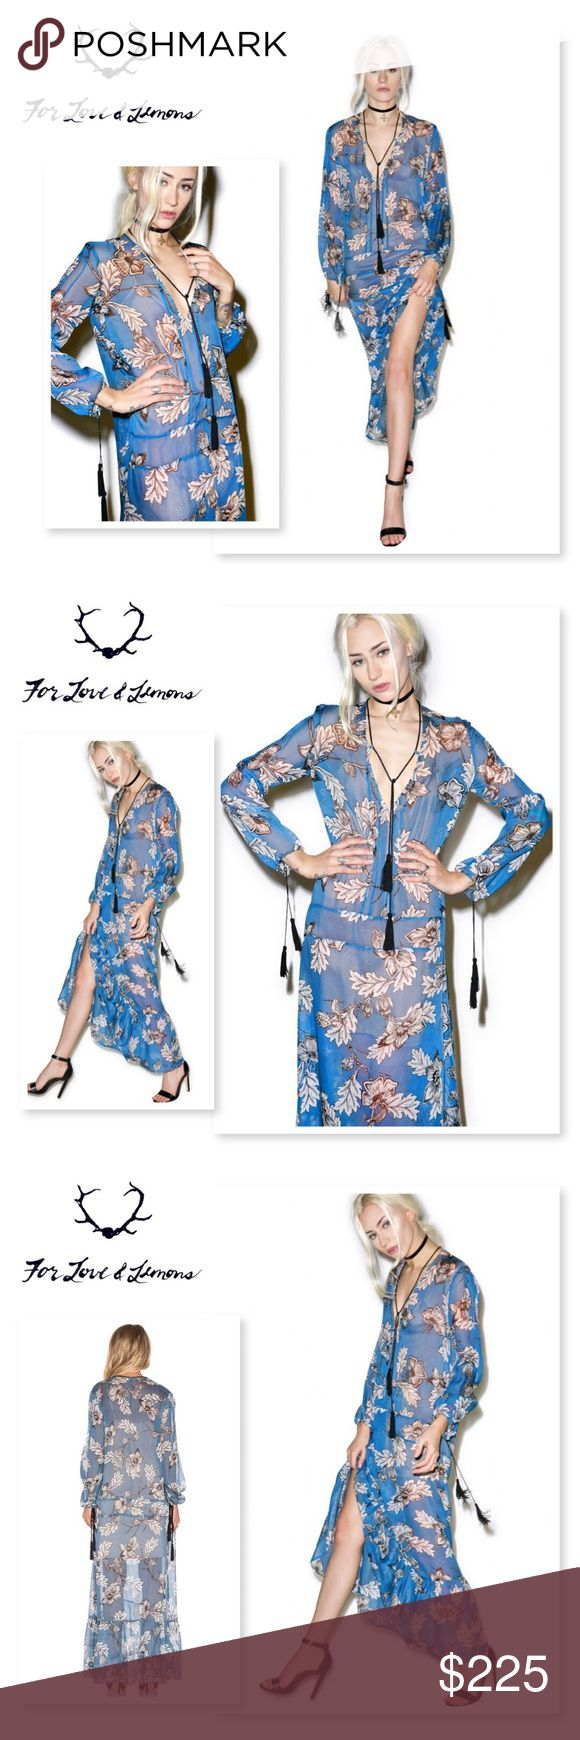 NWT FOR LOVE & LEMONS SANTA ROSA SILK MAXI NWT For Love & Lemons Santa Rosa Maxi Dress is gonna billow around ya like the breeze in wine country.This gorgeous long sleeve maxi dress is constructed from a luxe silk chiffon that perfectly flows over yer body with an effortless loose fit. Featuring an all over intricate hand-drawn floral design, open neckline, tassel details and ruffled hemline. Slip NOT included. For Love and Lemons Dresses Maxi